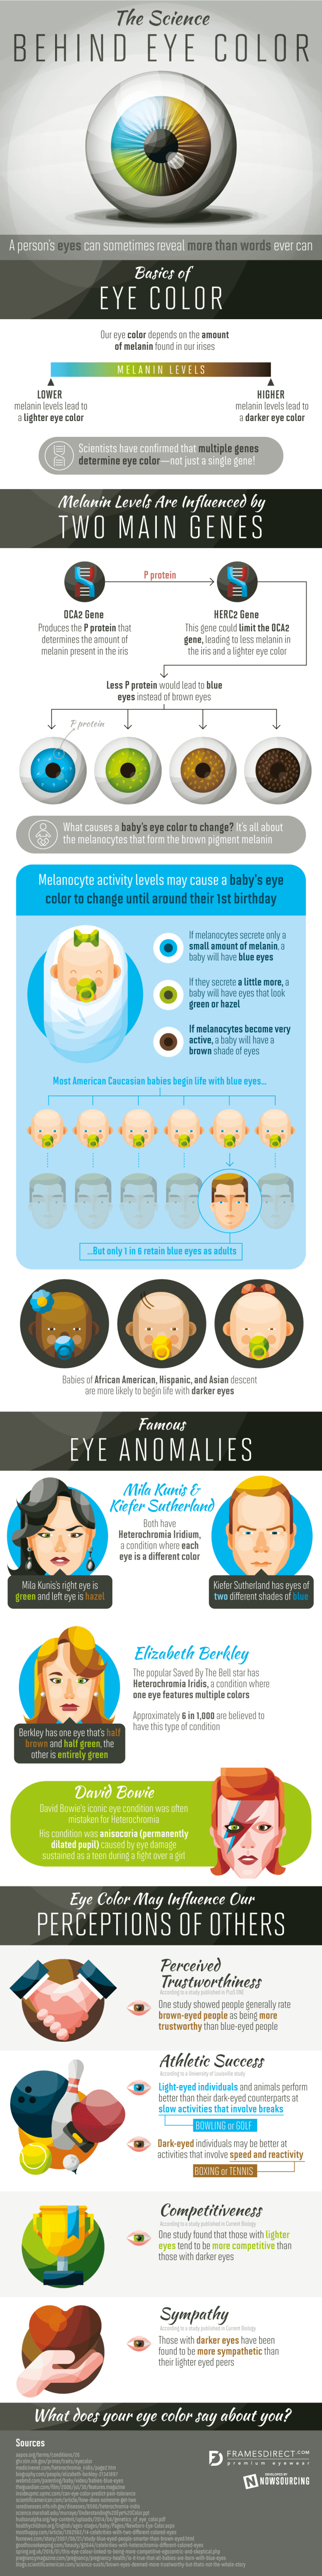 What Your Eye Color Tells The World [Infographic] 1